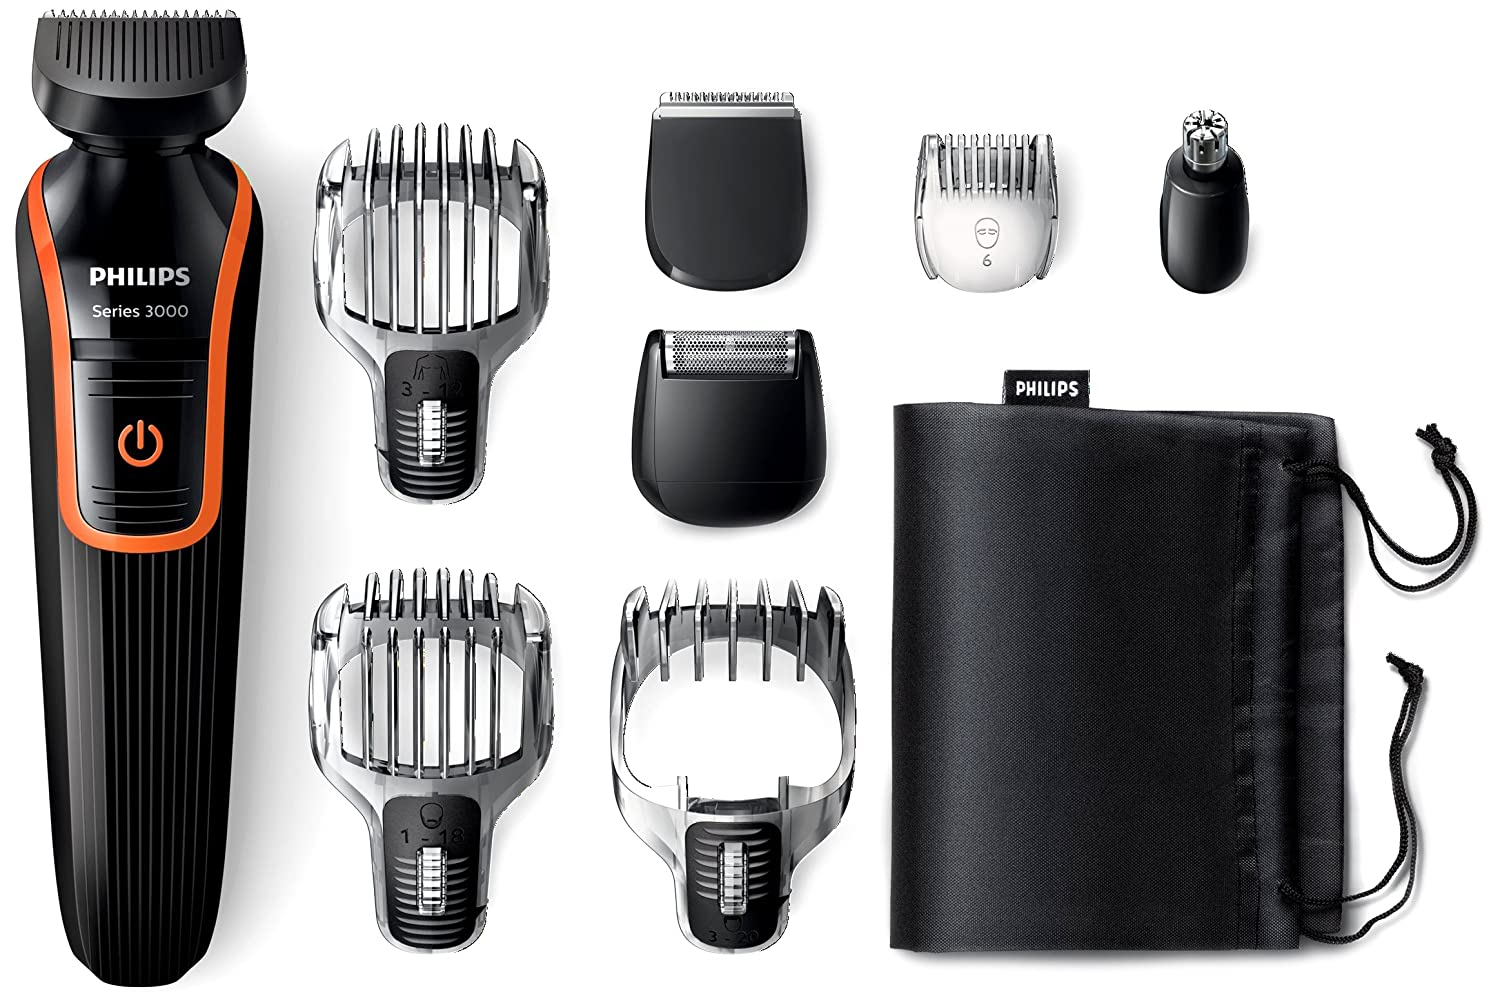 philips qg3352 23 waterproof hair beard trimmer shaver multi grooming kit set ebay. Black Bedroom Furniture Sets. Home Design Ideas